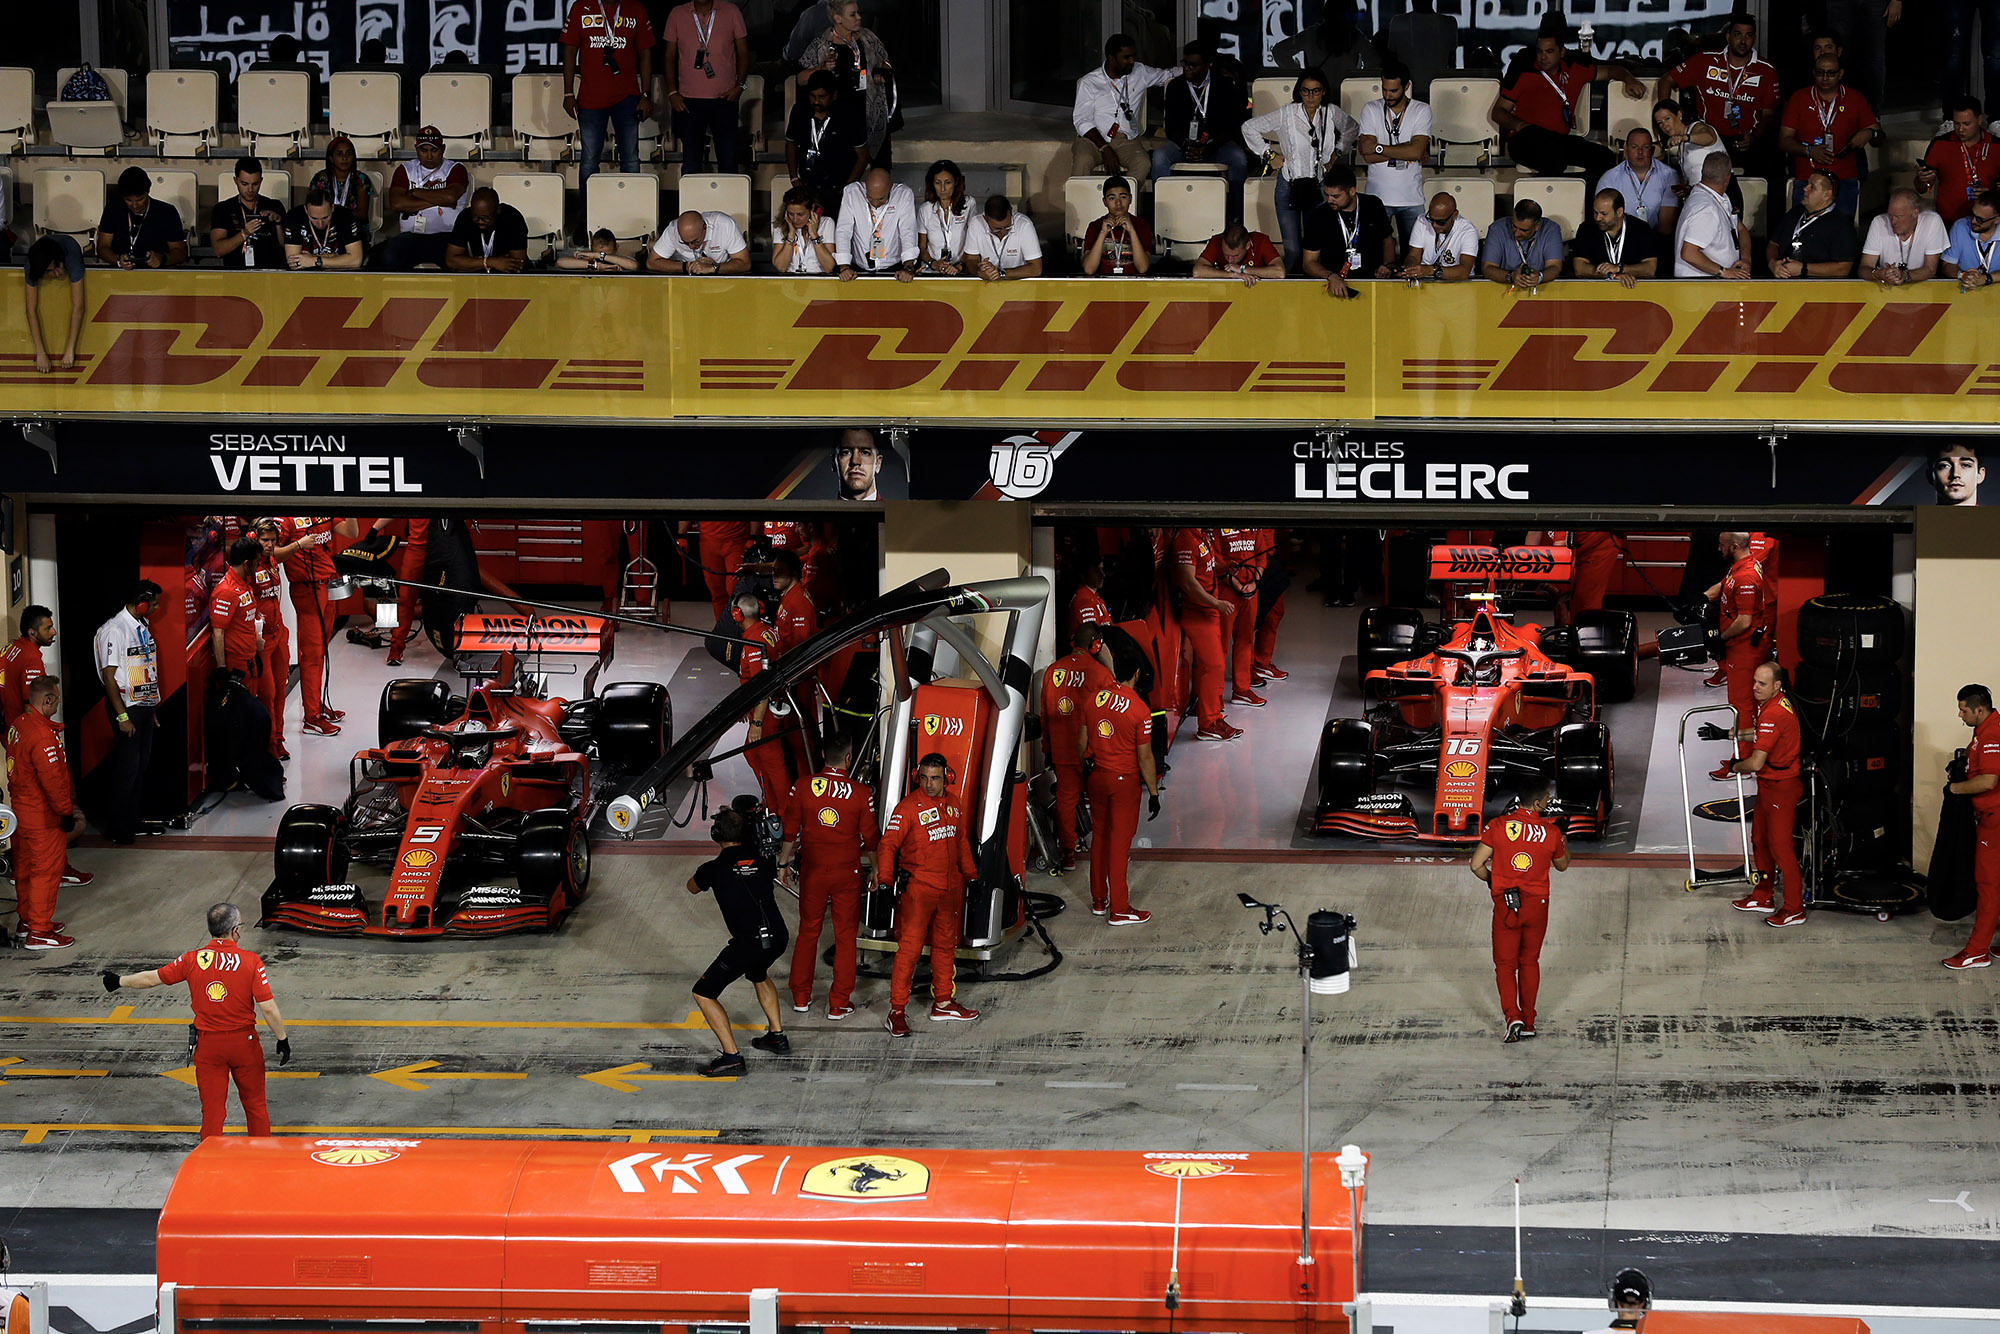 Ferrari releases its cars for another qualifying run at the 2019 Abu Dhabi Grand Prix